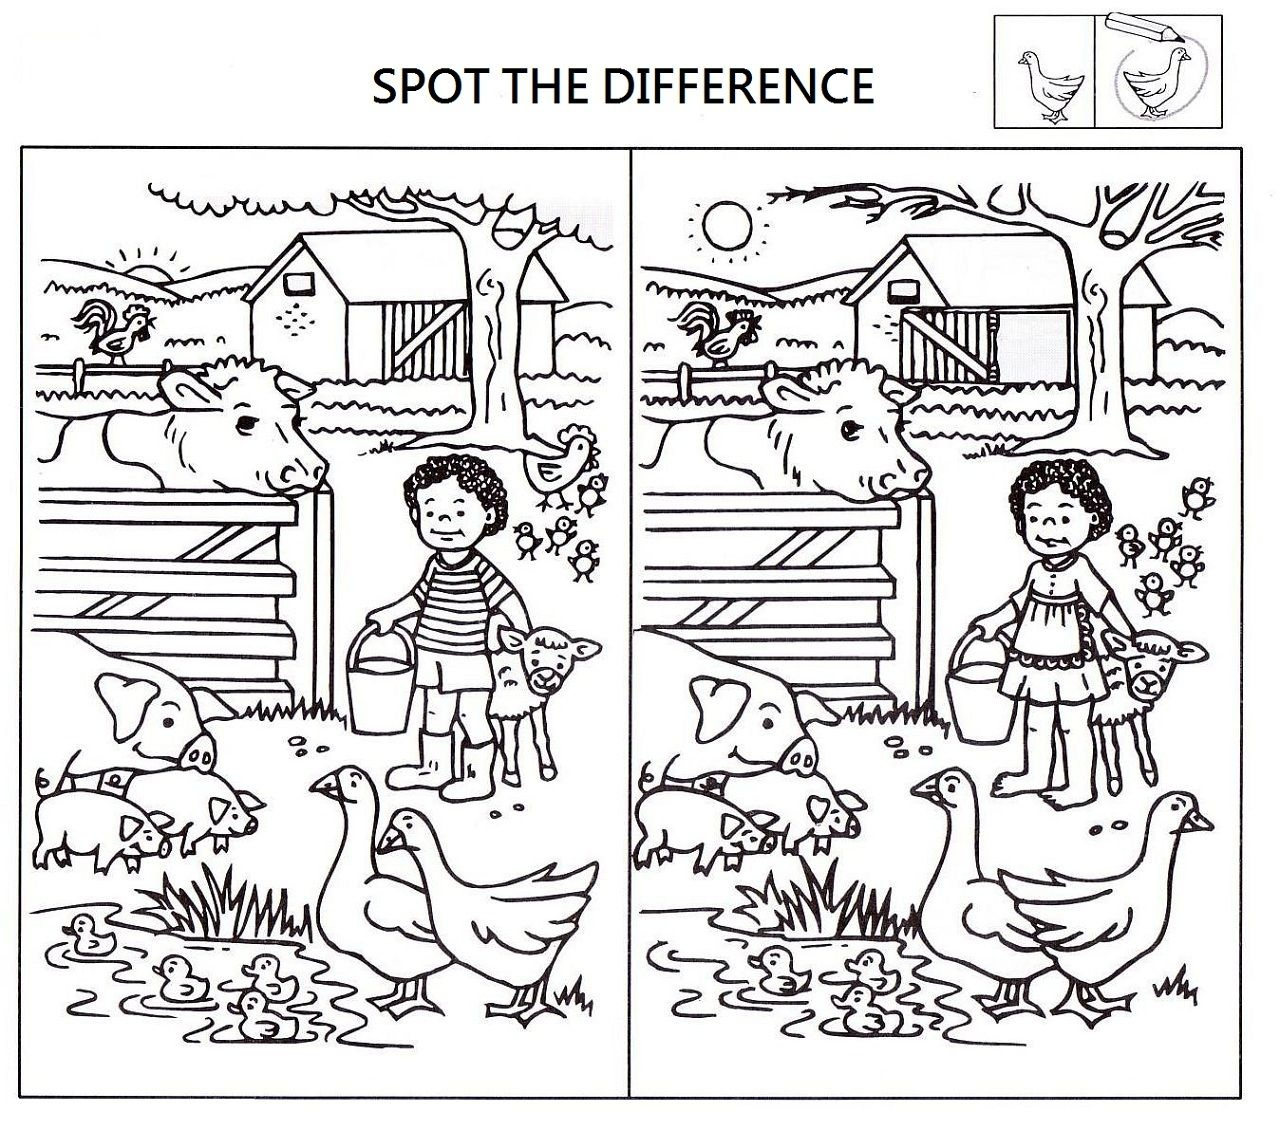 Spot The Difference Worksheets For Kids   Kids Worksheets Printable - Free Printable Spot The Difference For Kids